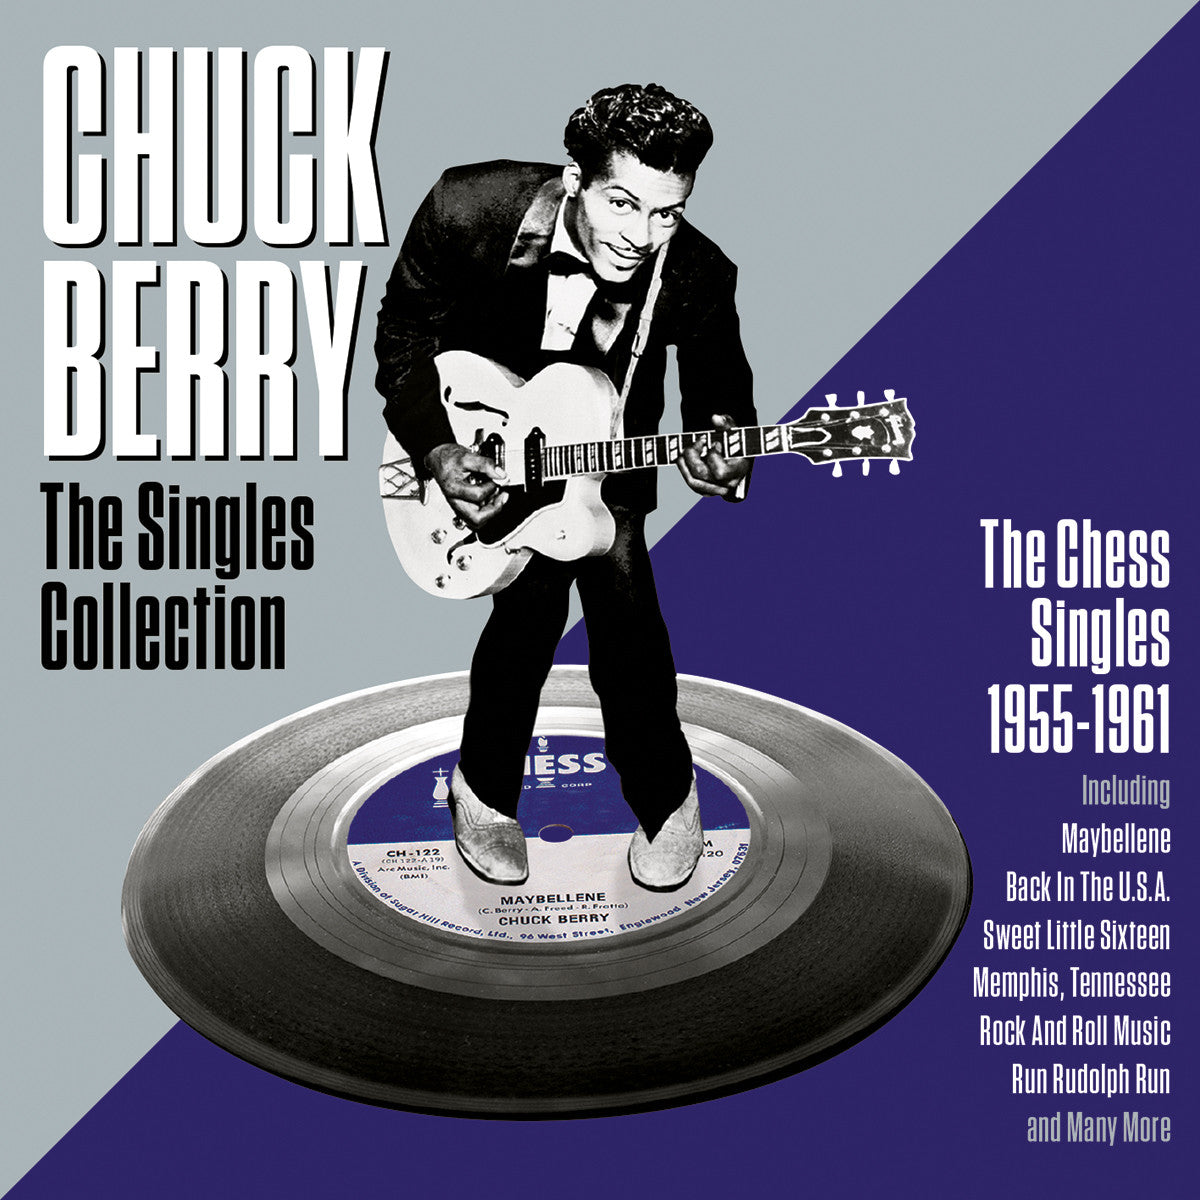 CHUCK BERRY: THE CHESS SINGLES (2 CDS)